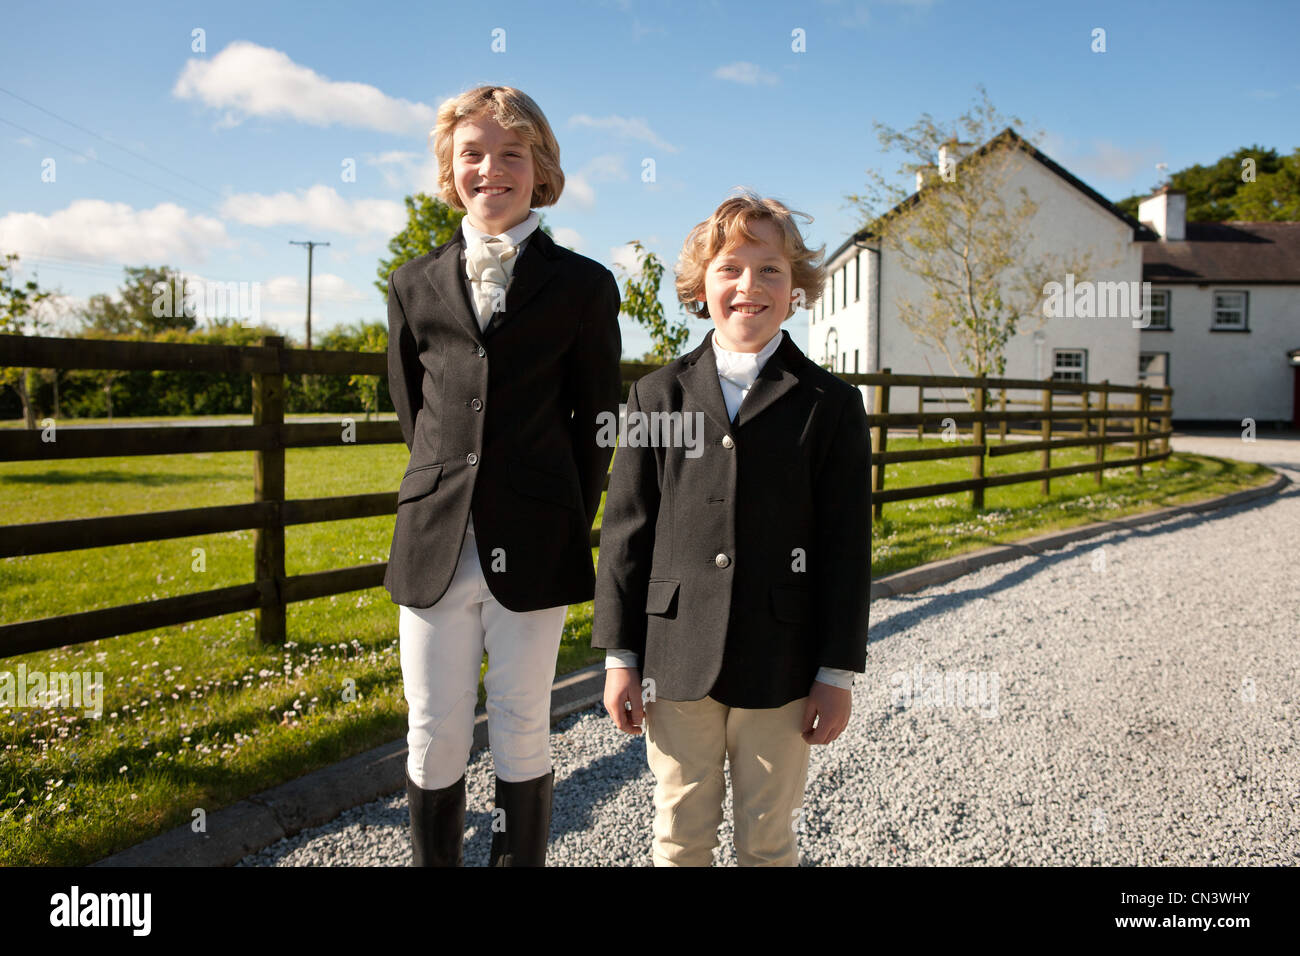 Portrait Of Boys Wearing Horse Riding Clothes Stock Photo Alamy